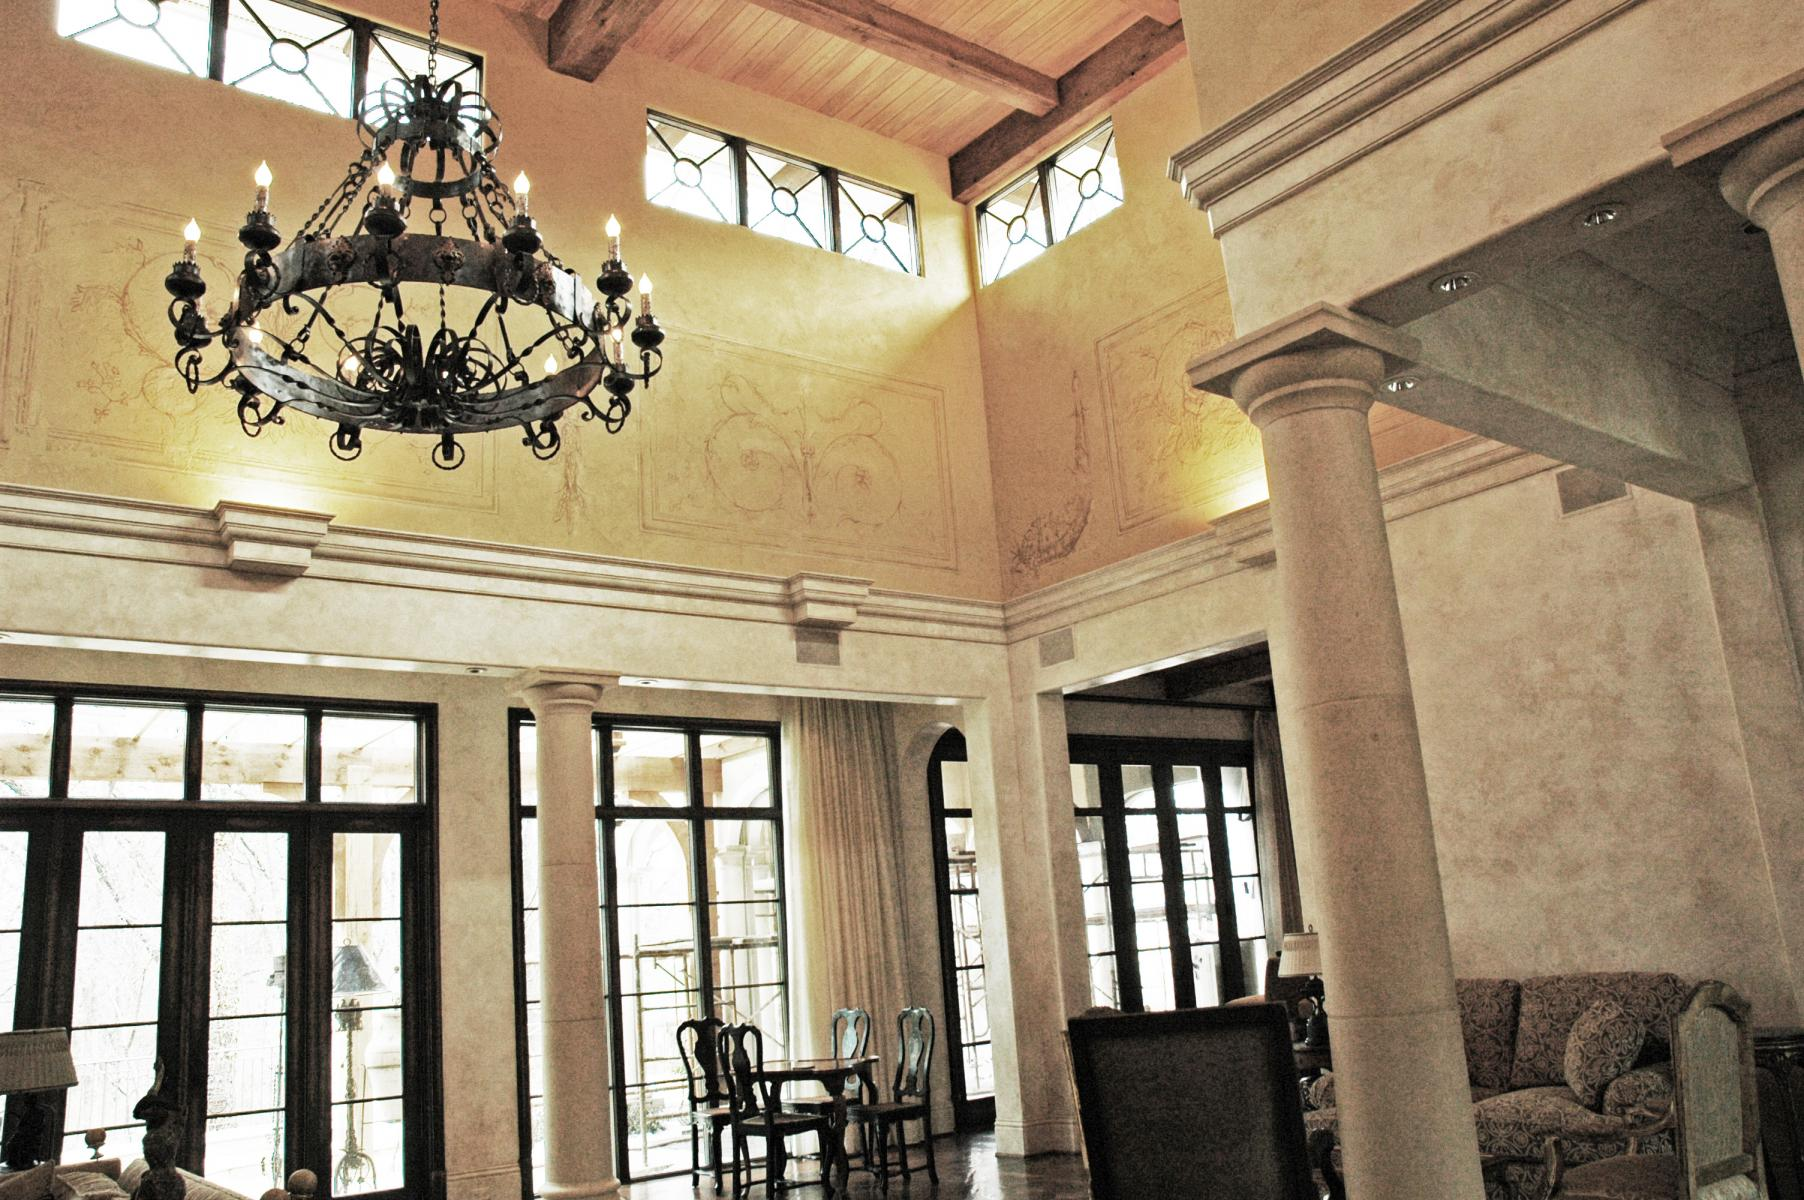 Private Client  - Faux stone glazed lower room area. Upper plaster and glaze walls showcase hand painted tone on tone trompe l'oeil fresco panels.